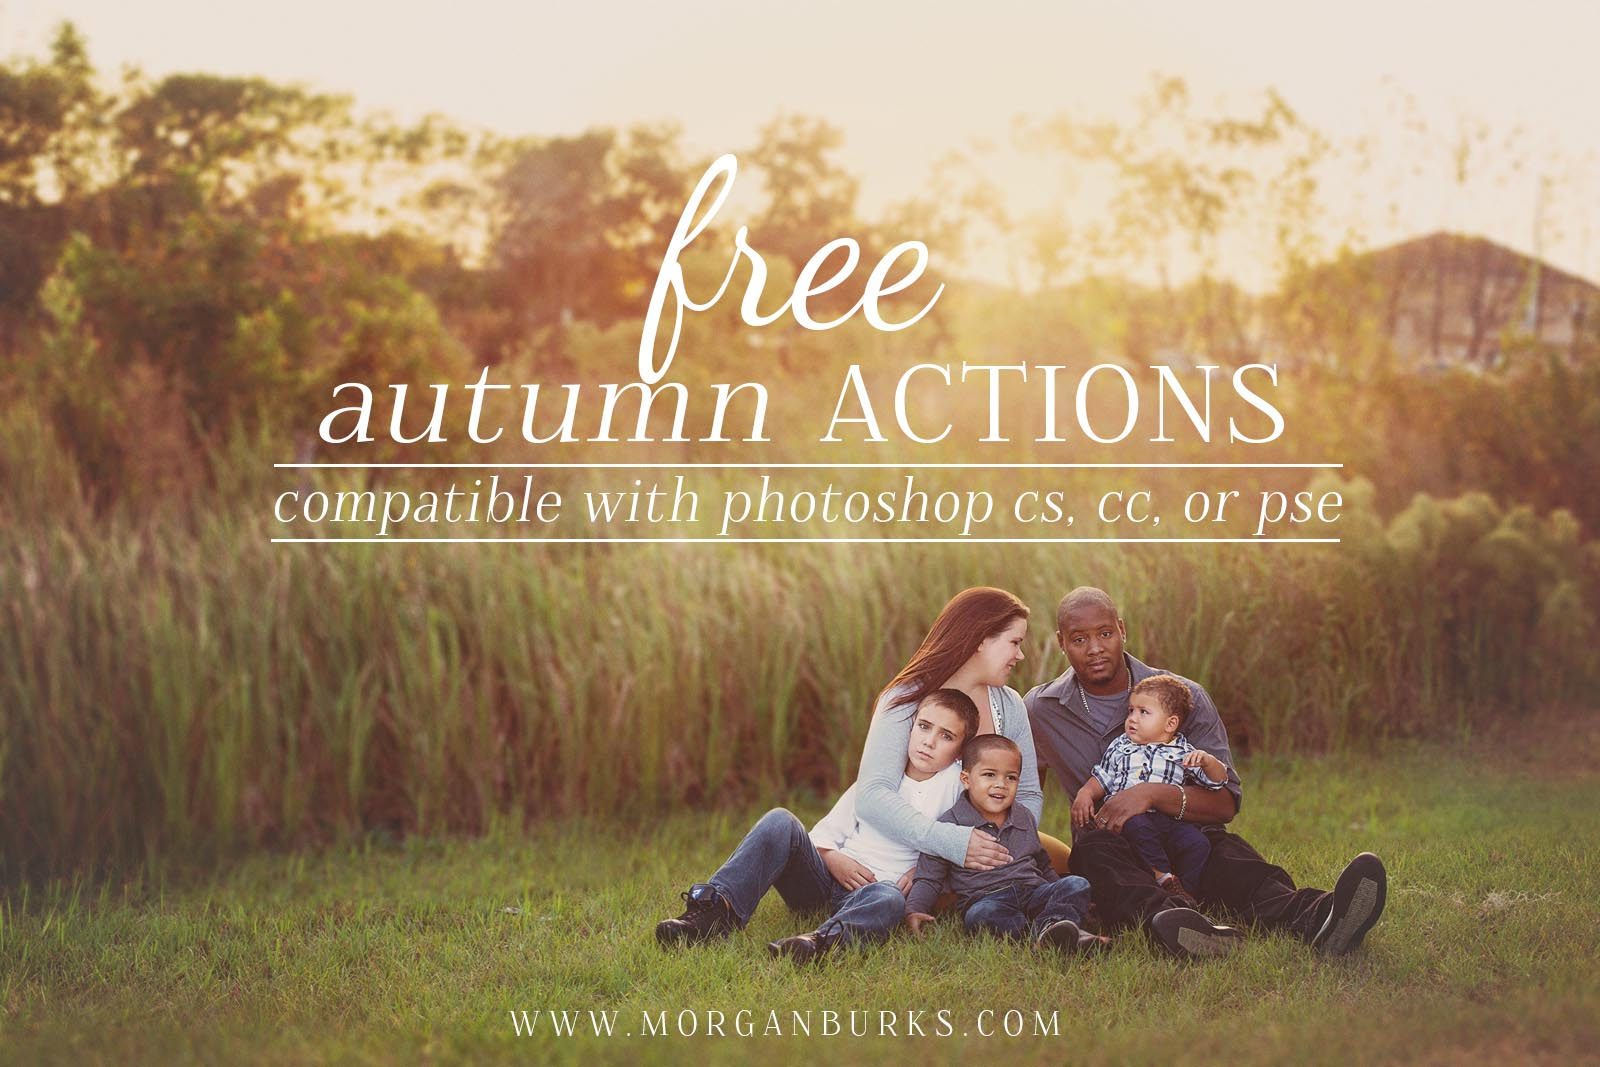 Free-Photoshop-Actions-Thoughts-Of-Autumn